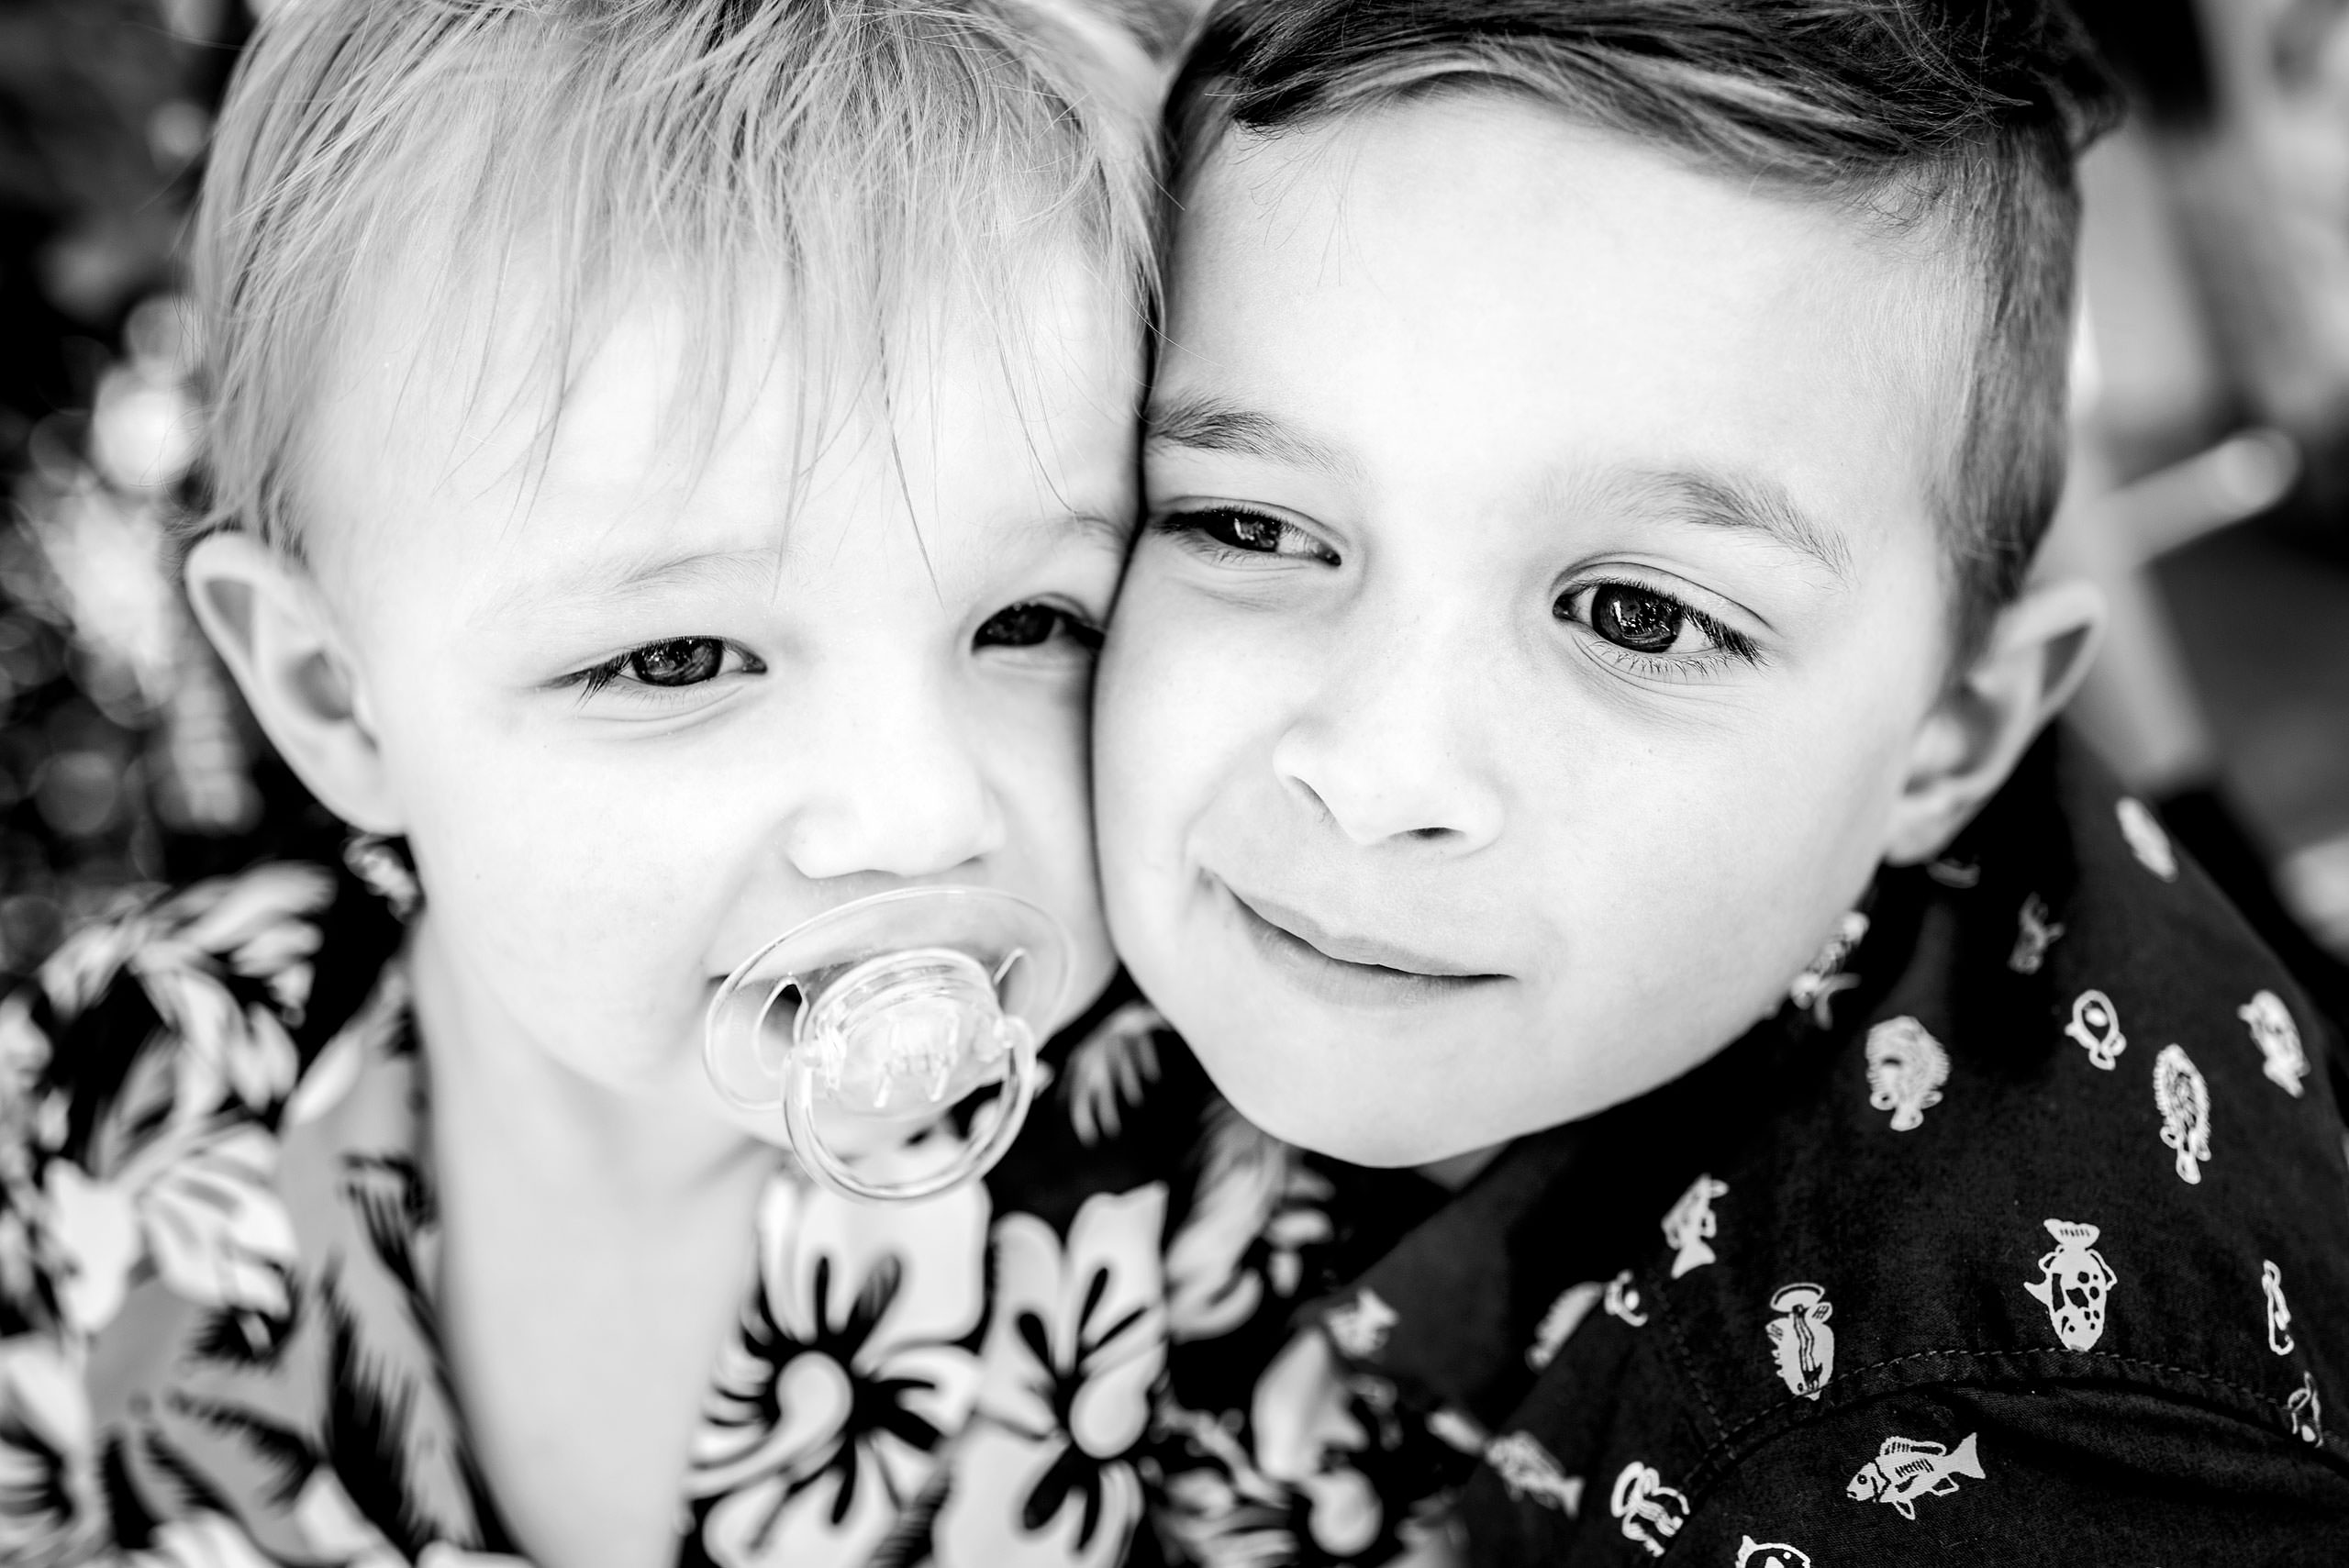 two brothers with their faces close together by destination family photographers sean leblanc